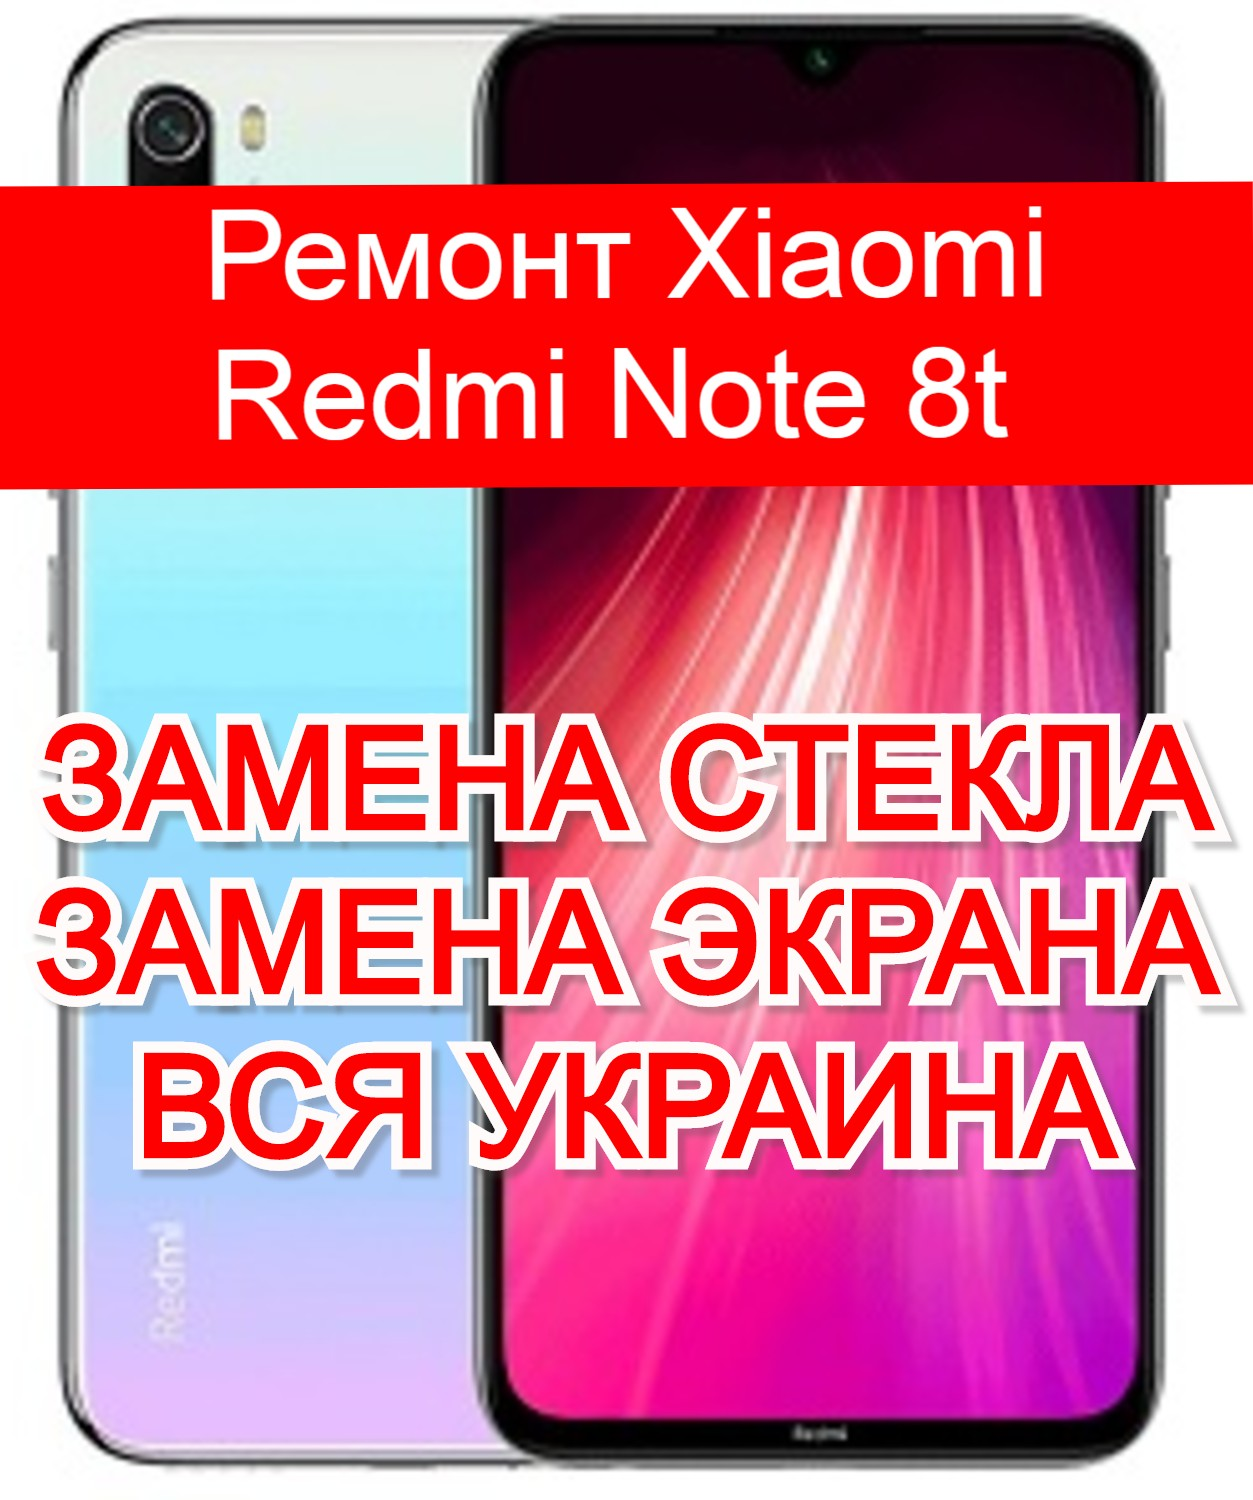 ремонт Xiaomi Redmi Note 8t замена стекла и экрана